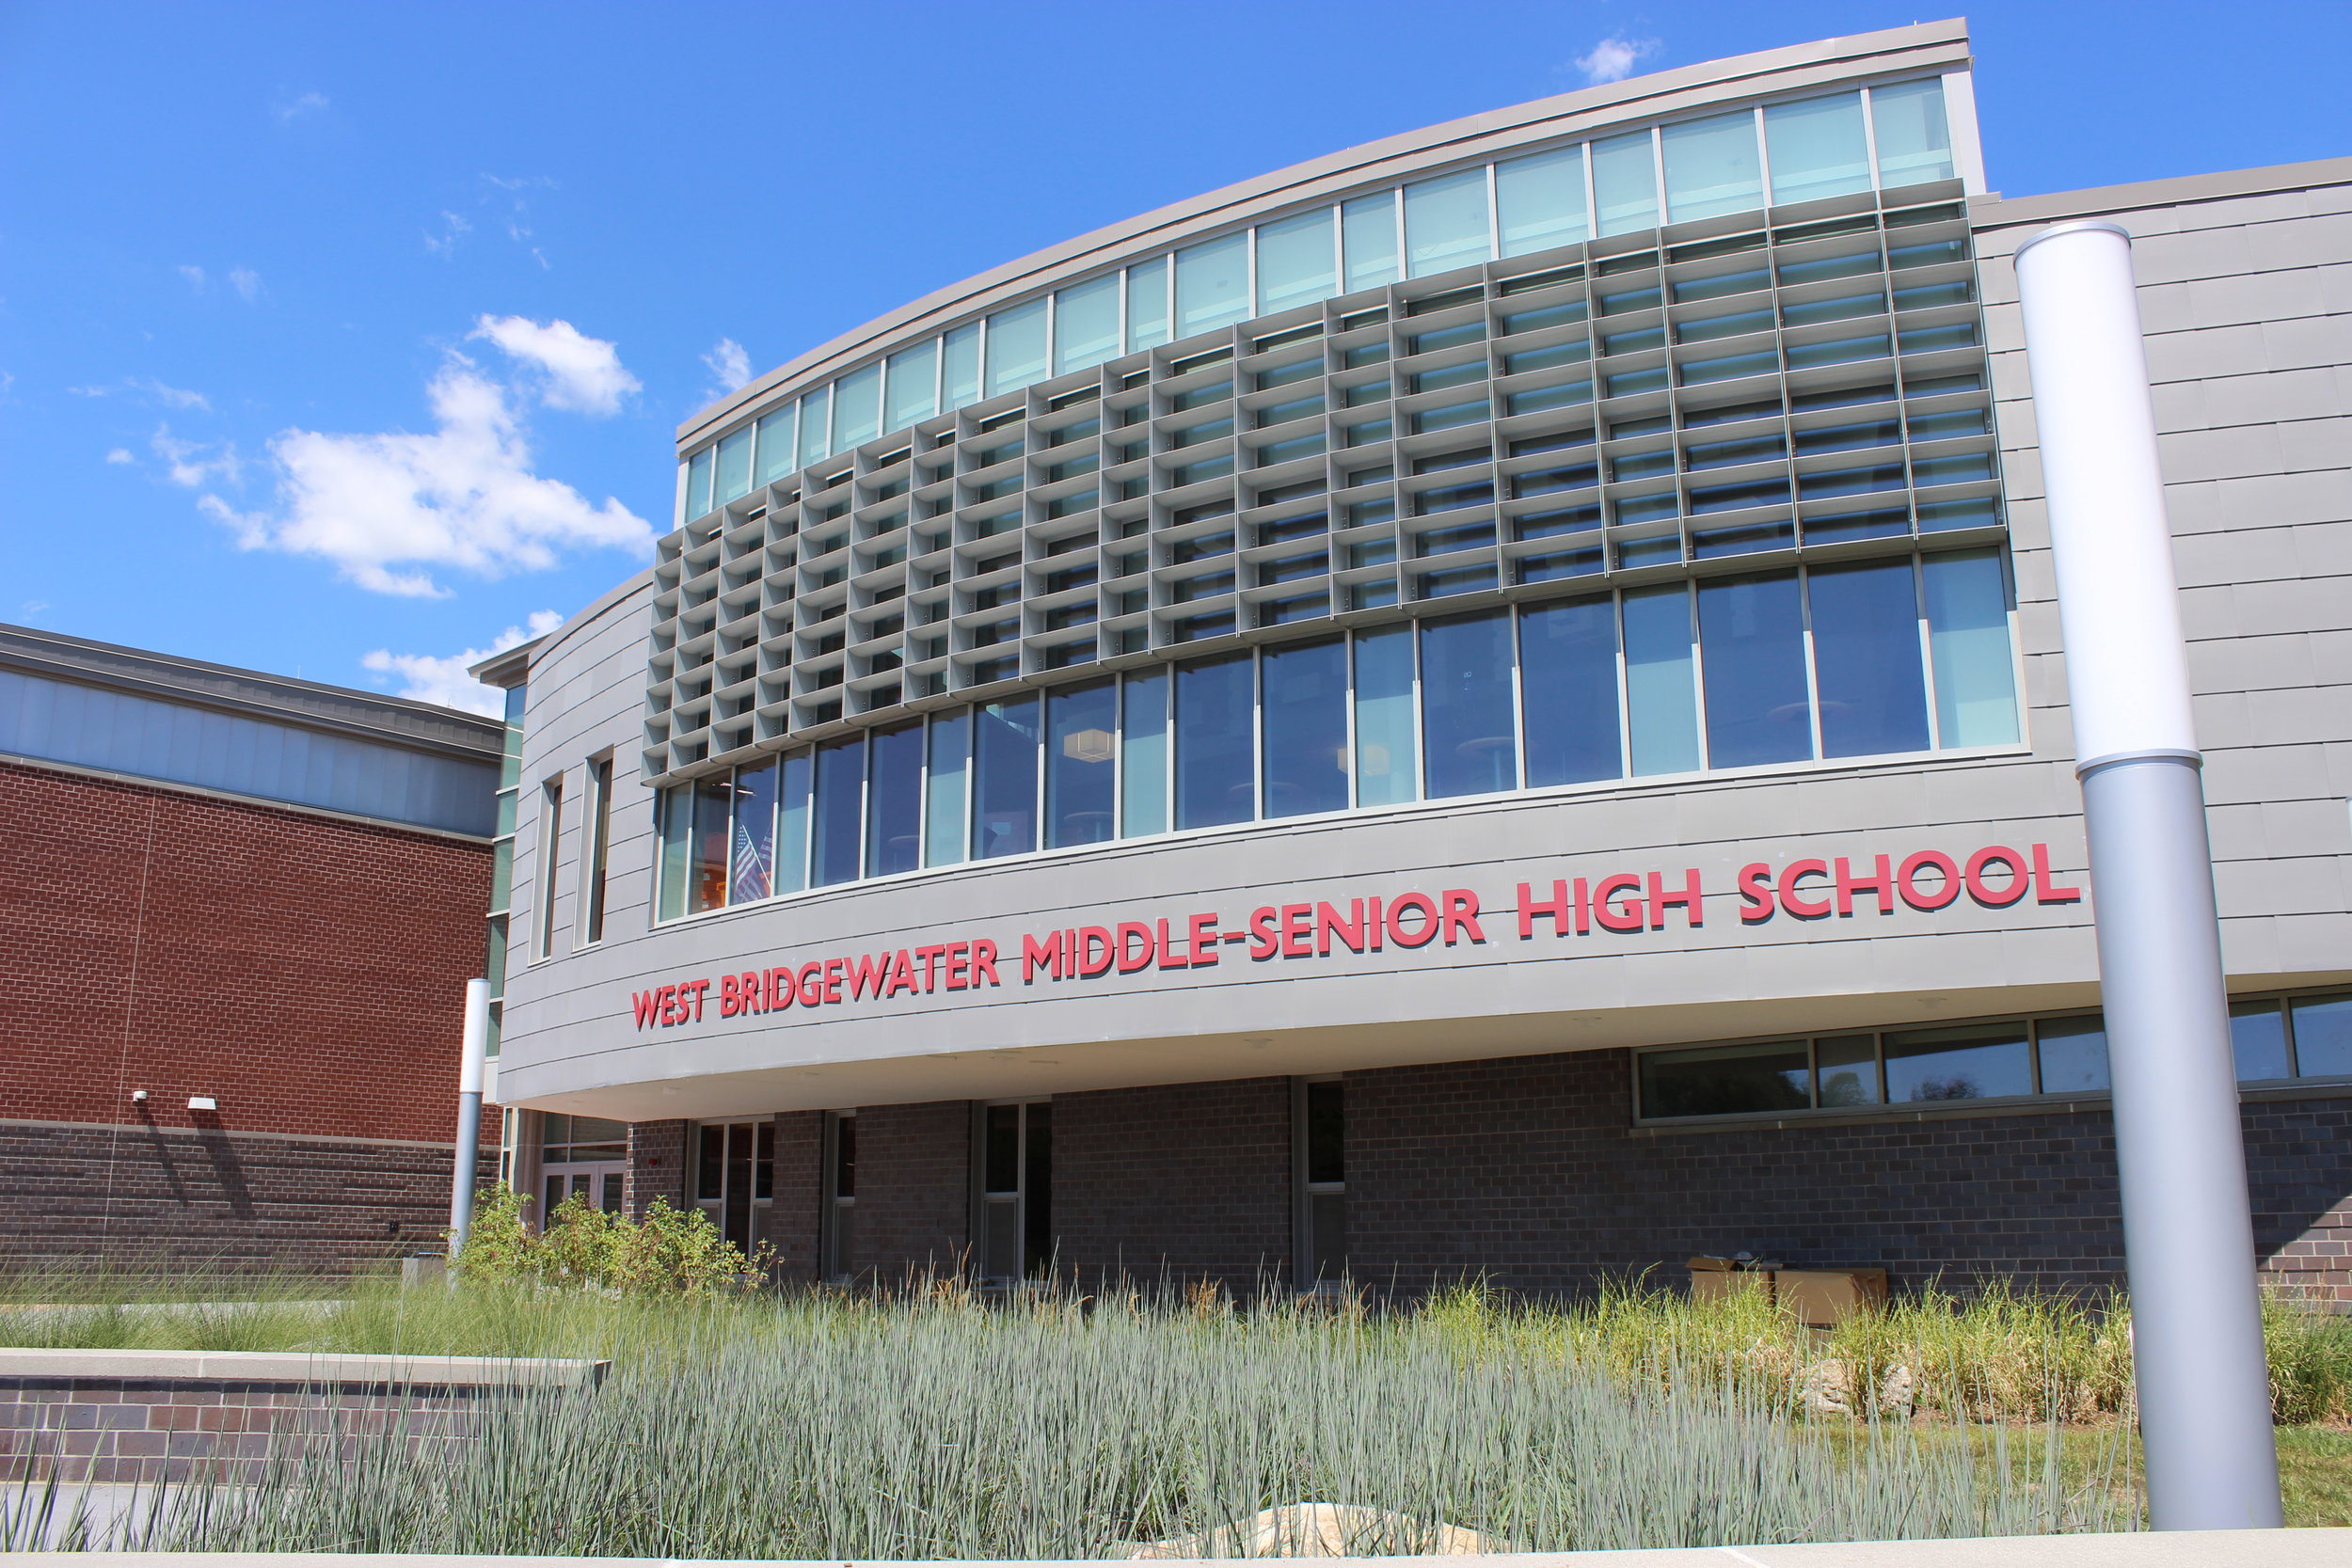 West Bridgewater Middle | Senior High School